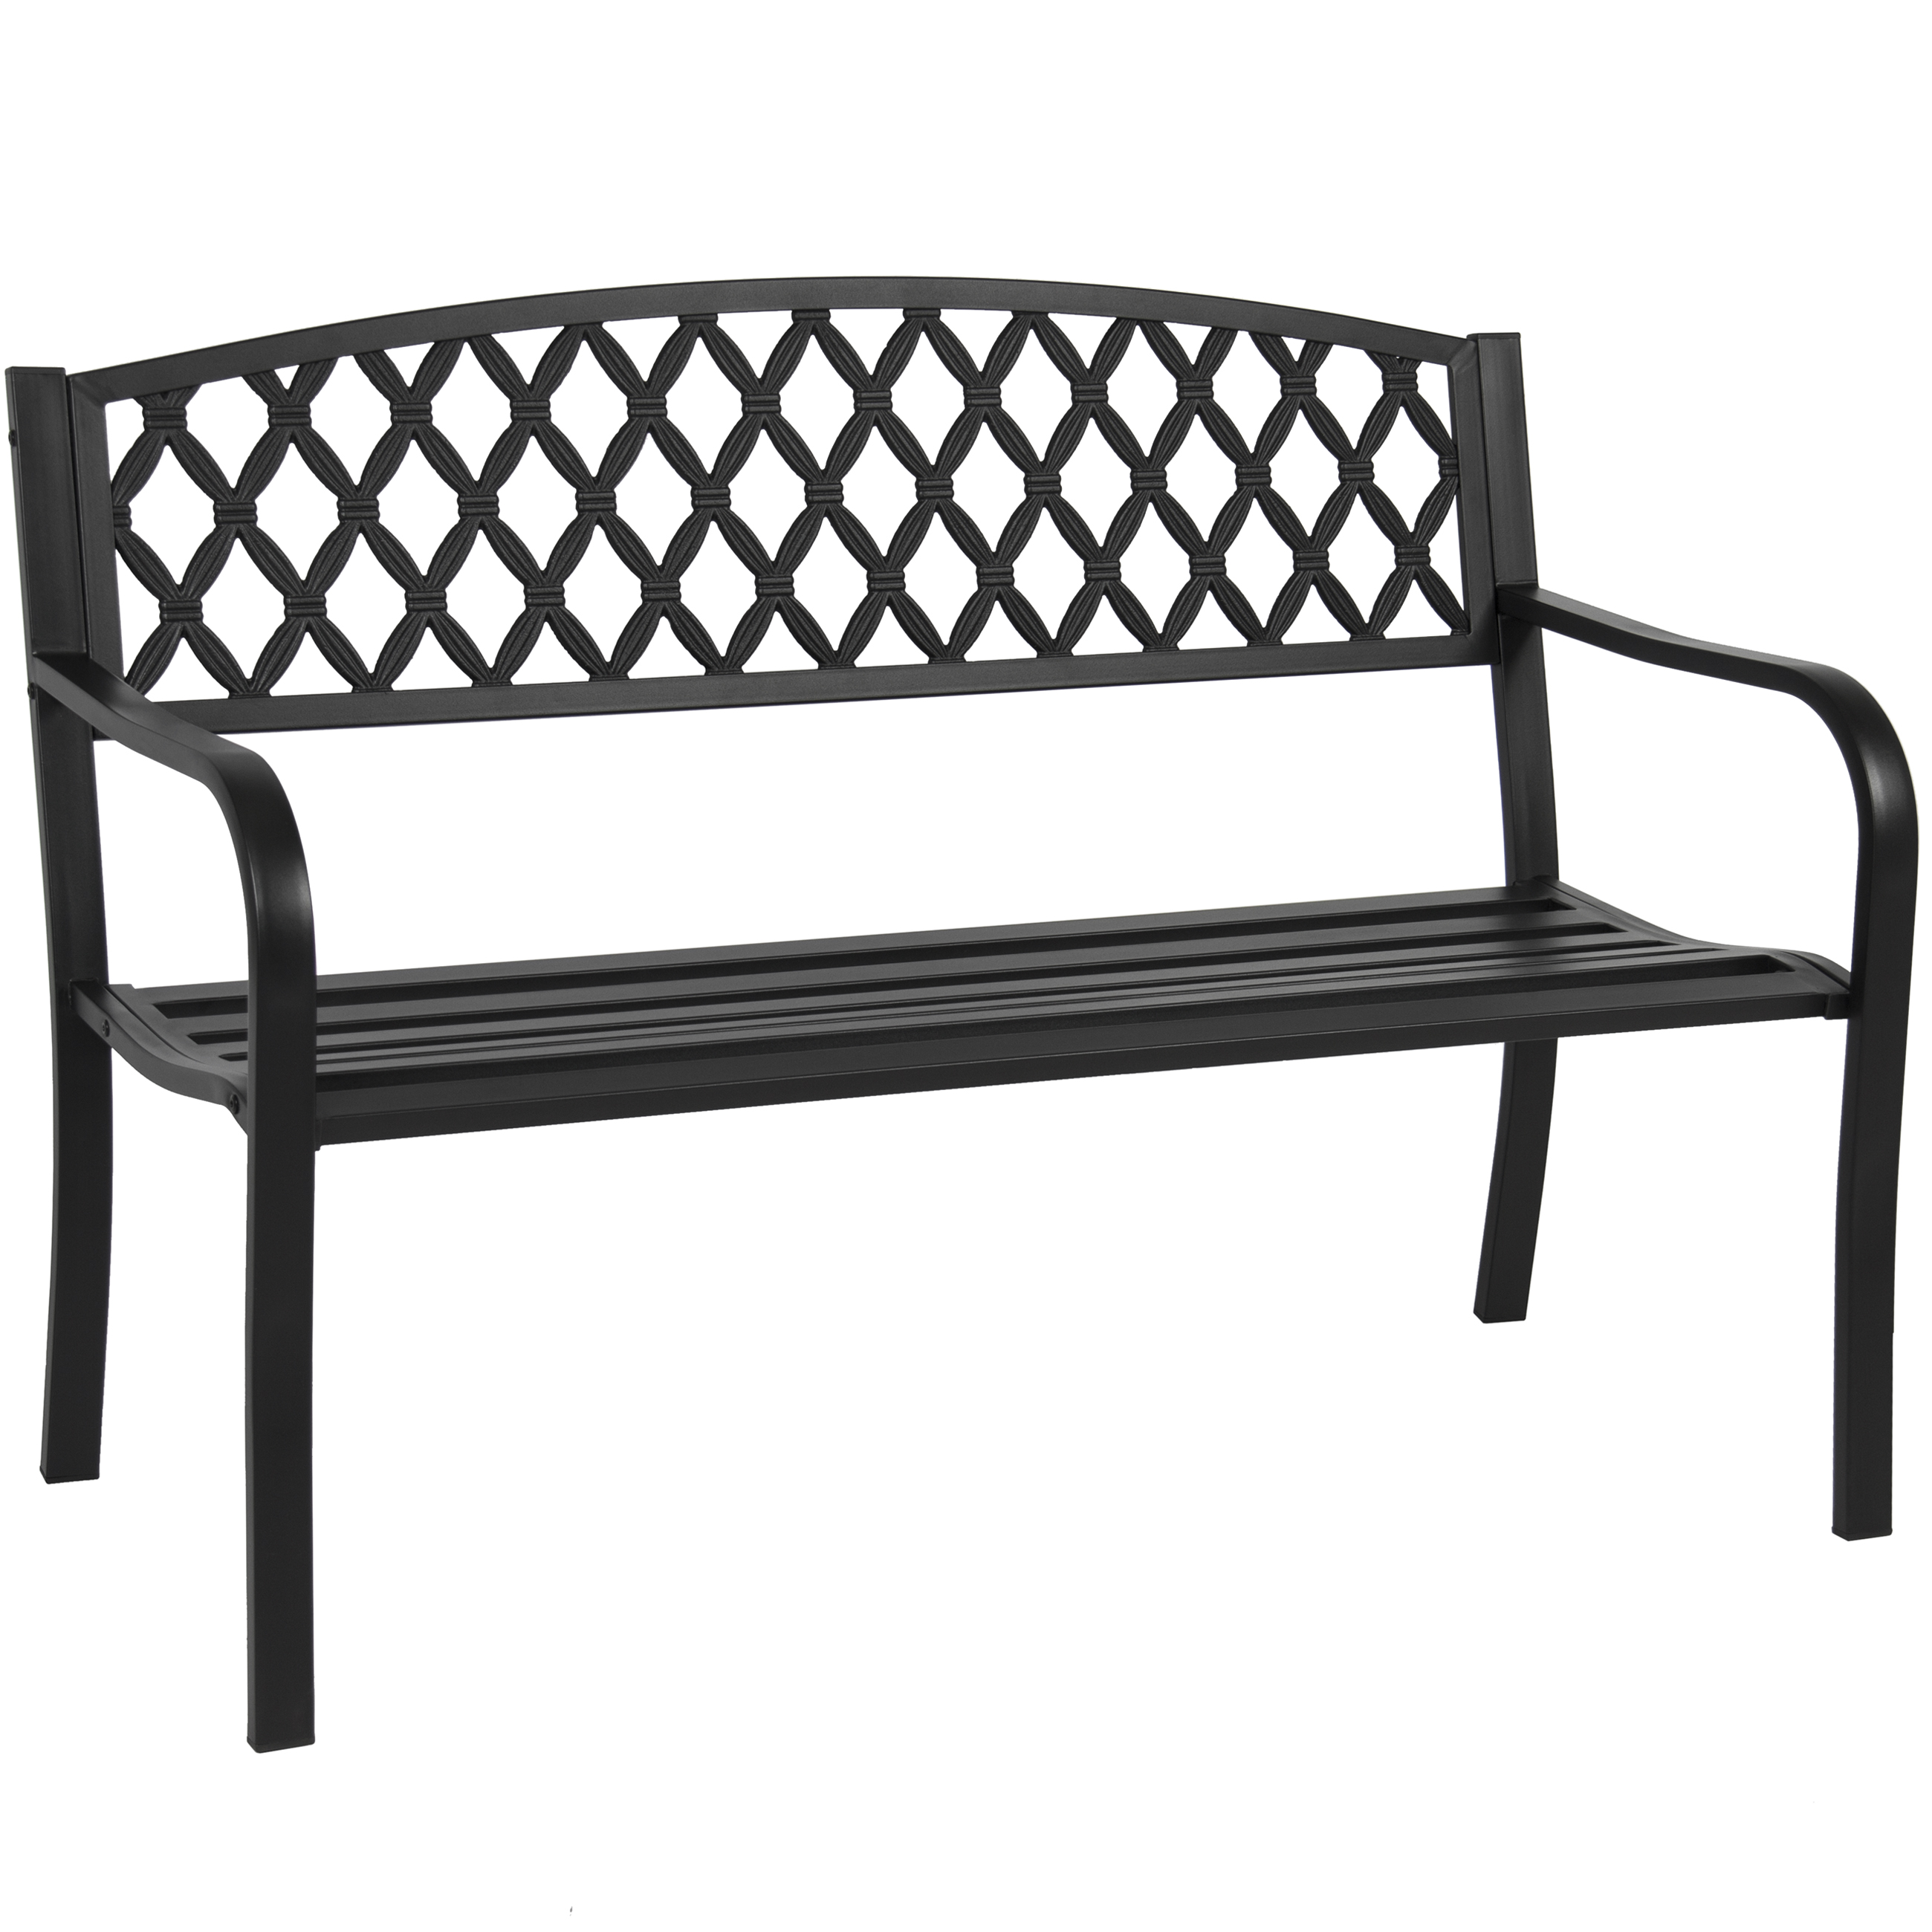 Bcp 50 patio garden bench park yard outdoor furniture steel frame porch chair at garden sensation Yard bench